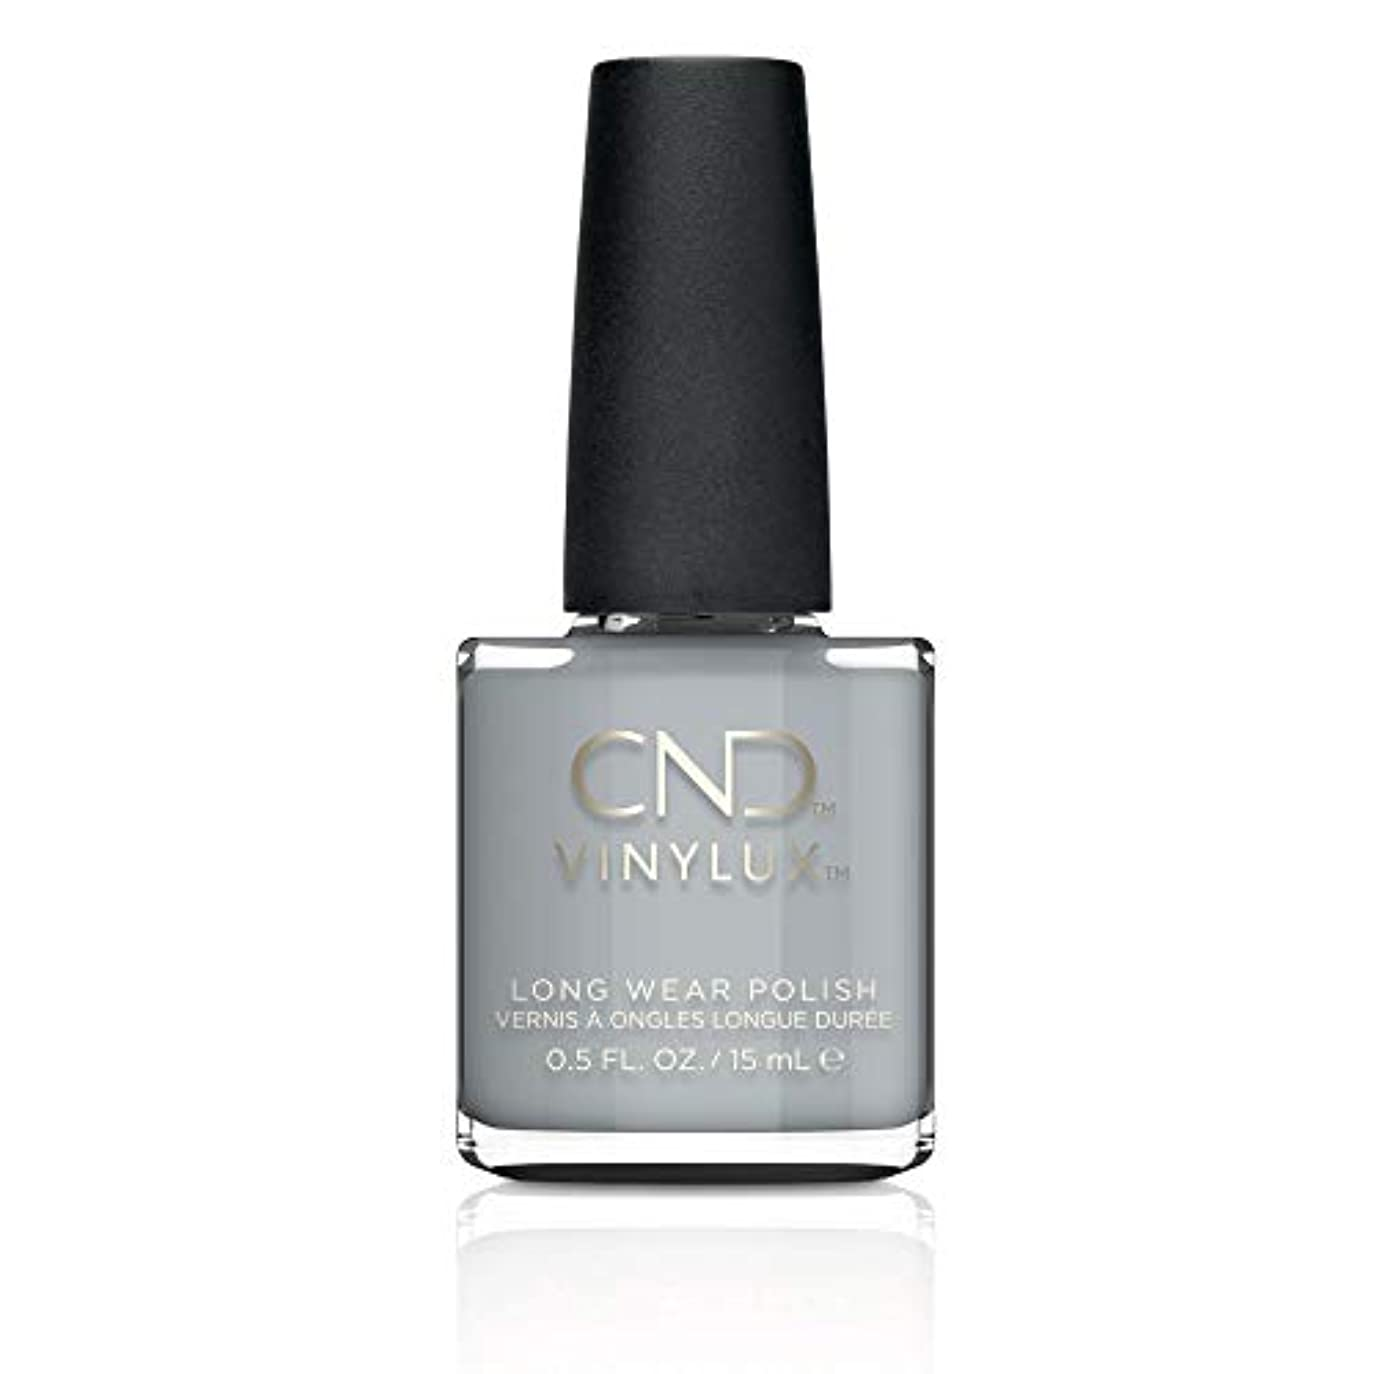 CND Vinylux Nail Polish - Fall 2017 Glacial Illusion Collection - Mystic Slate - 0.5oz / 15ml